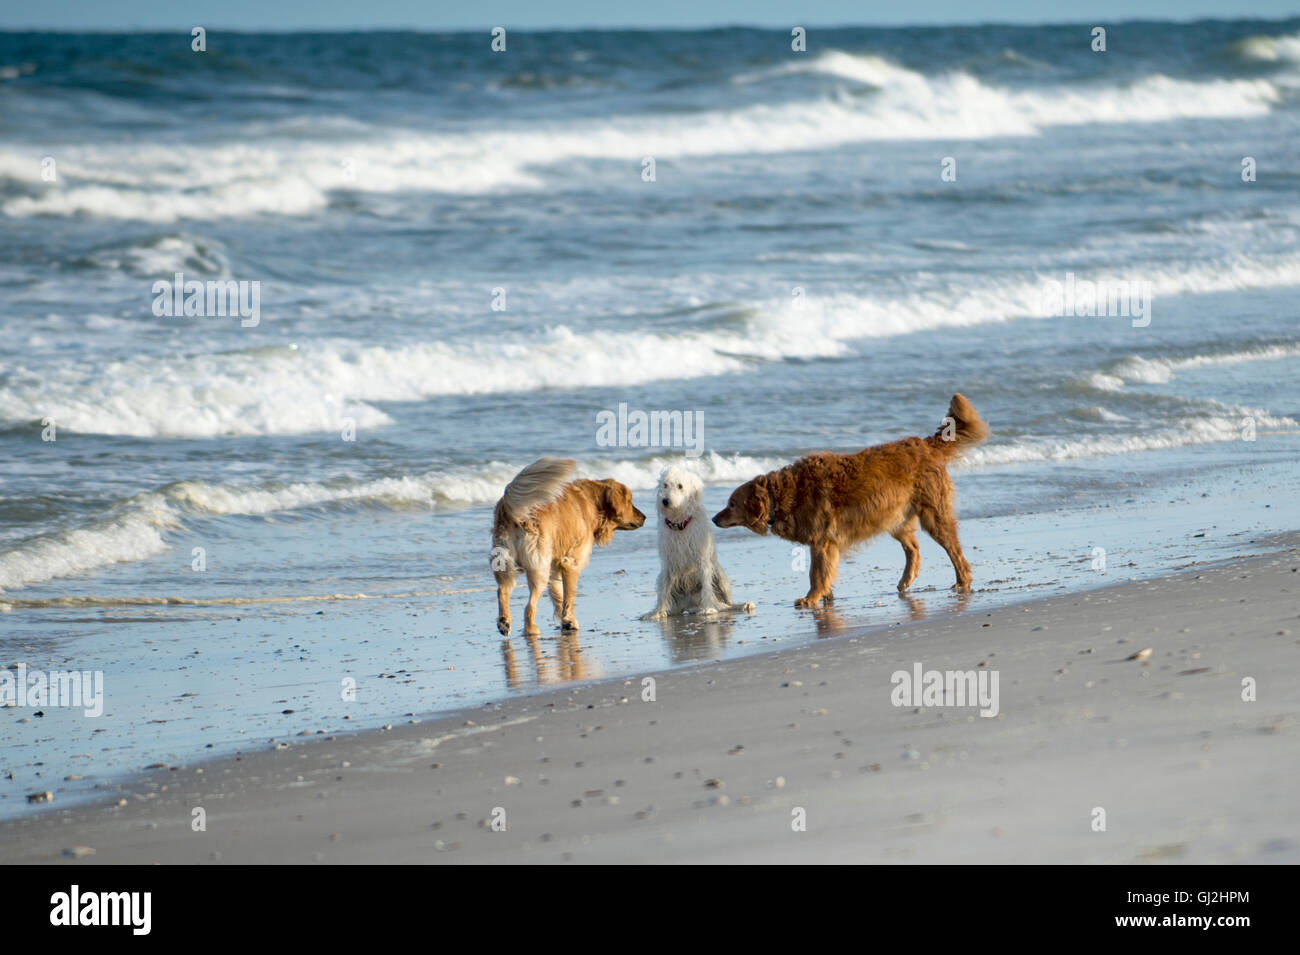 Goldendoodle with two golden retrievers on beach - Stock Image